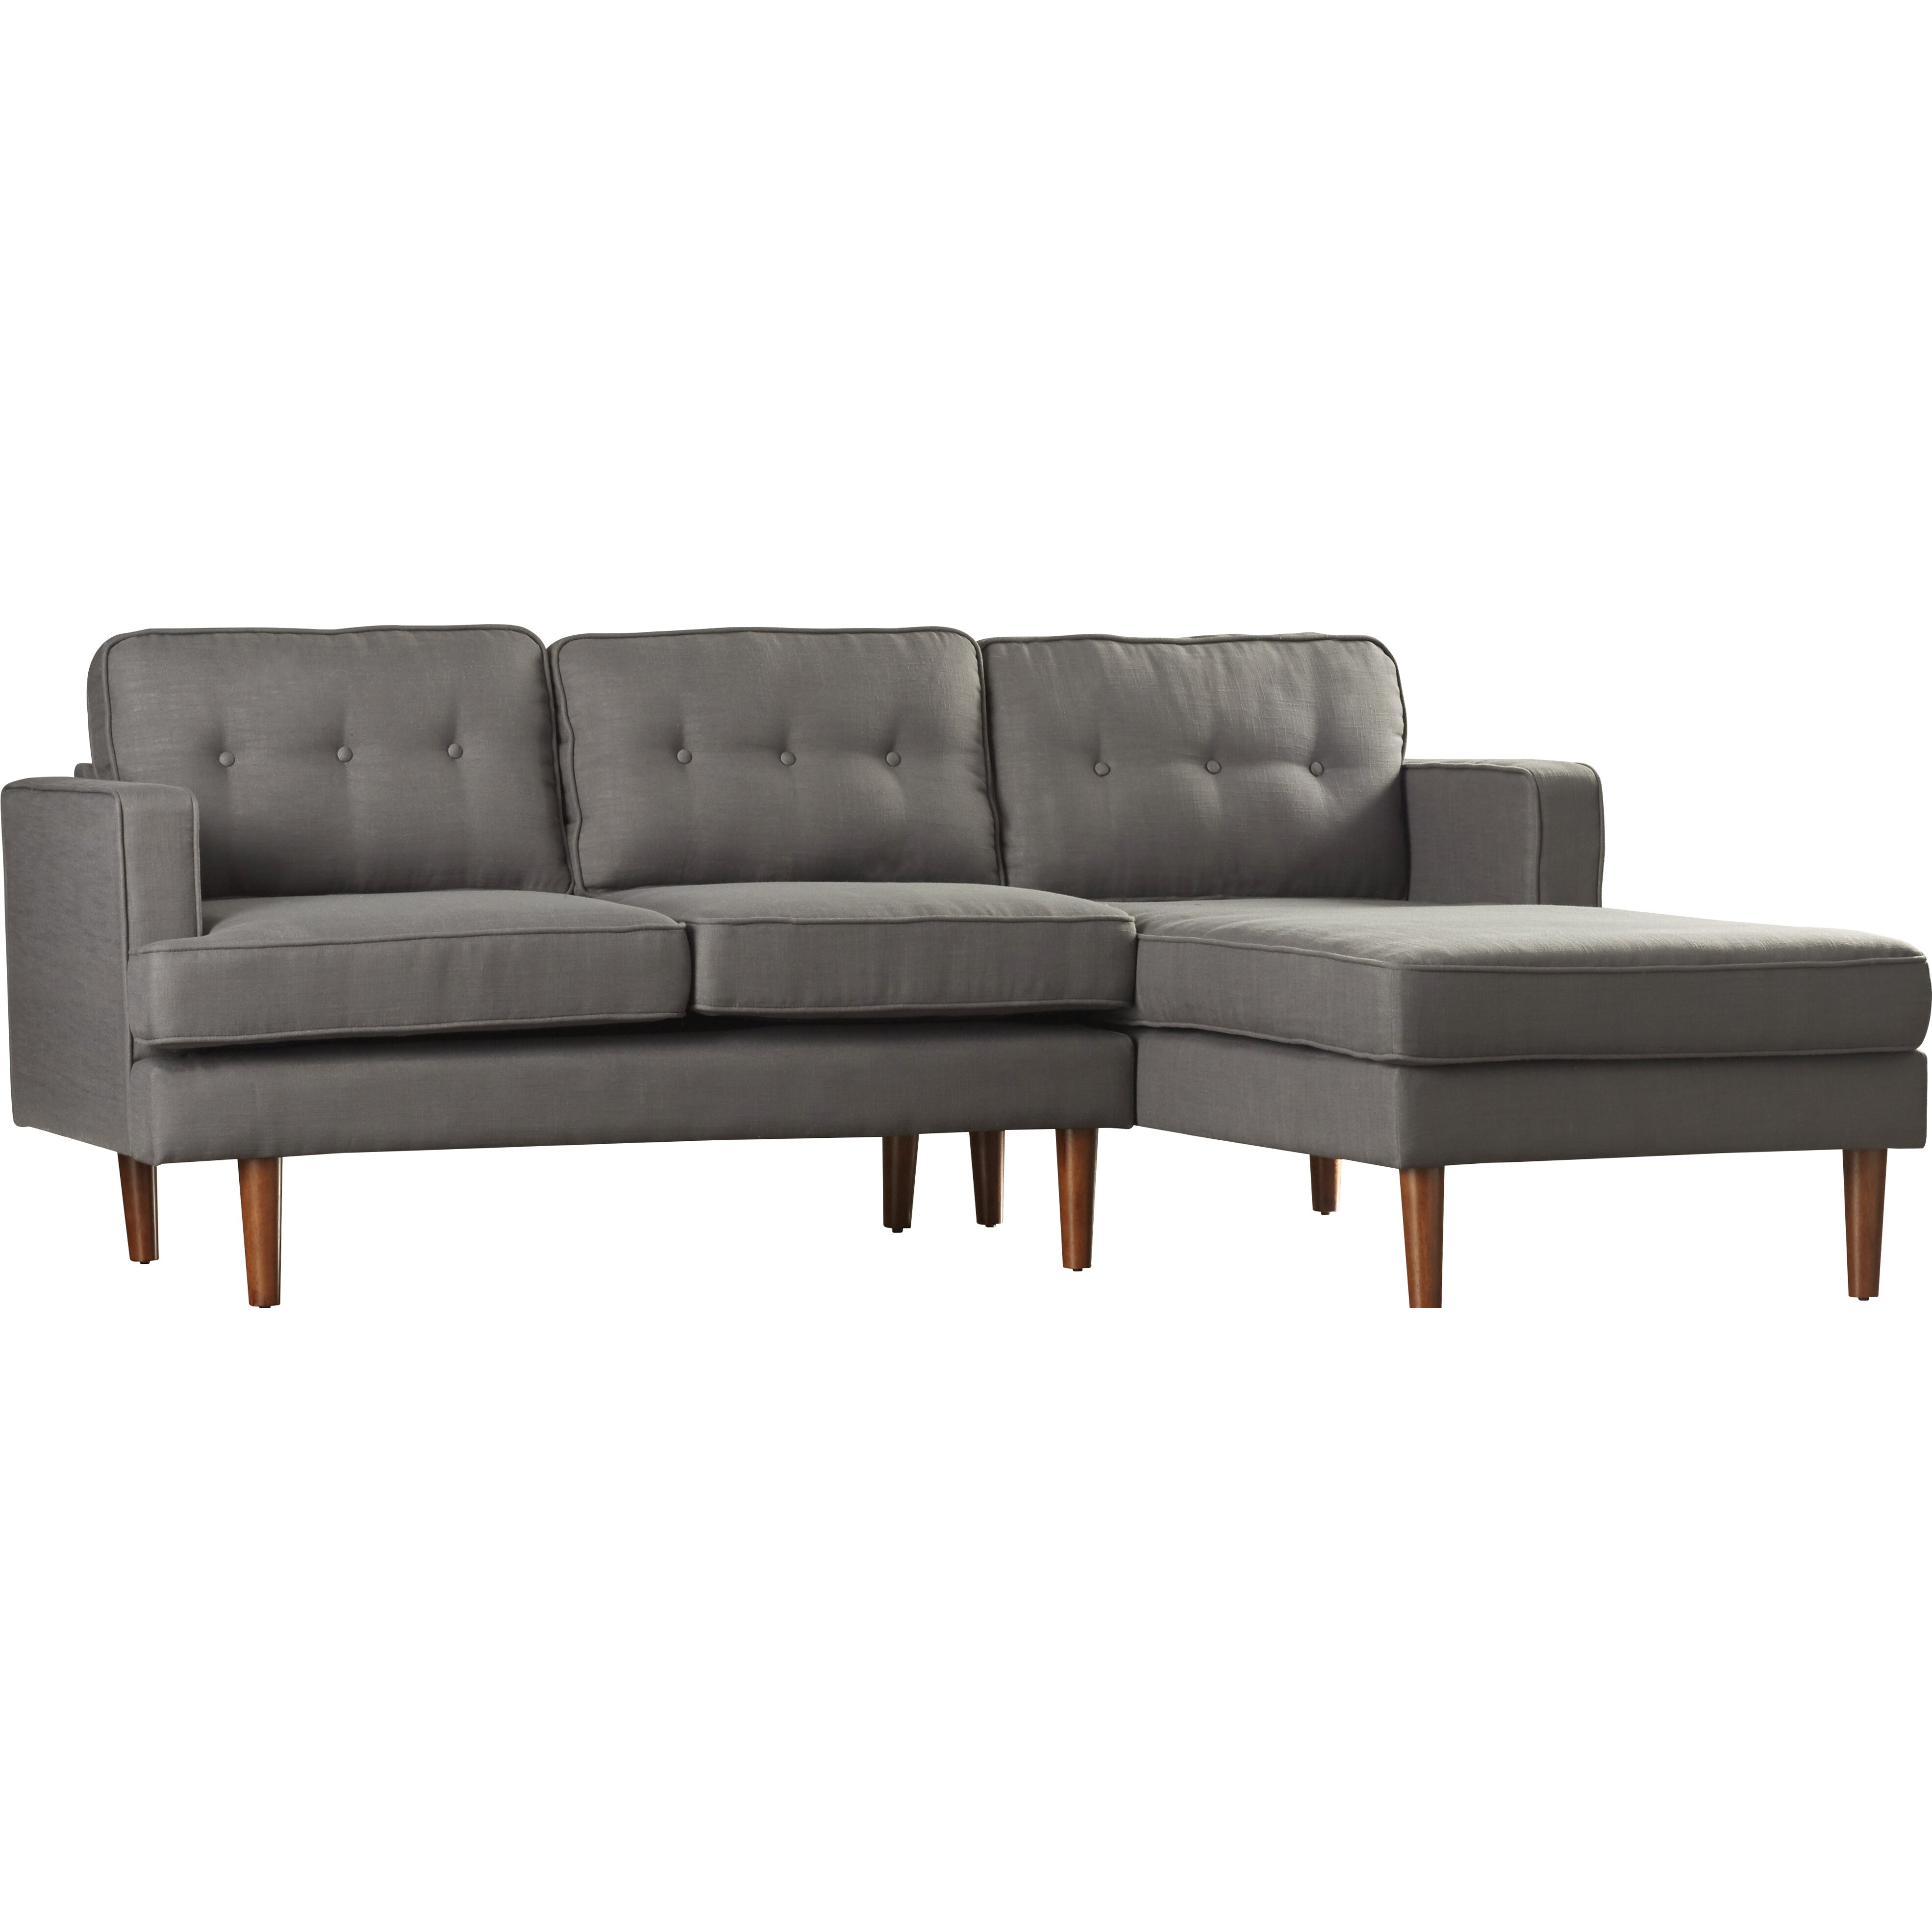 High quality leather sectional sofas - Quick View Monterey Sectional